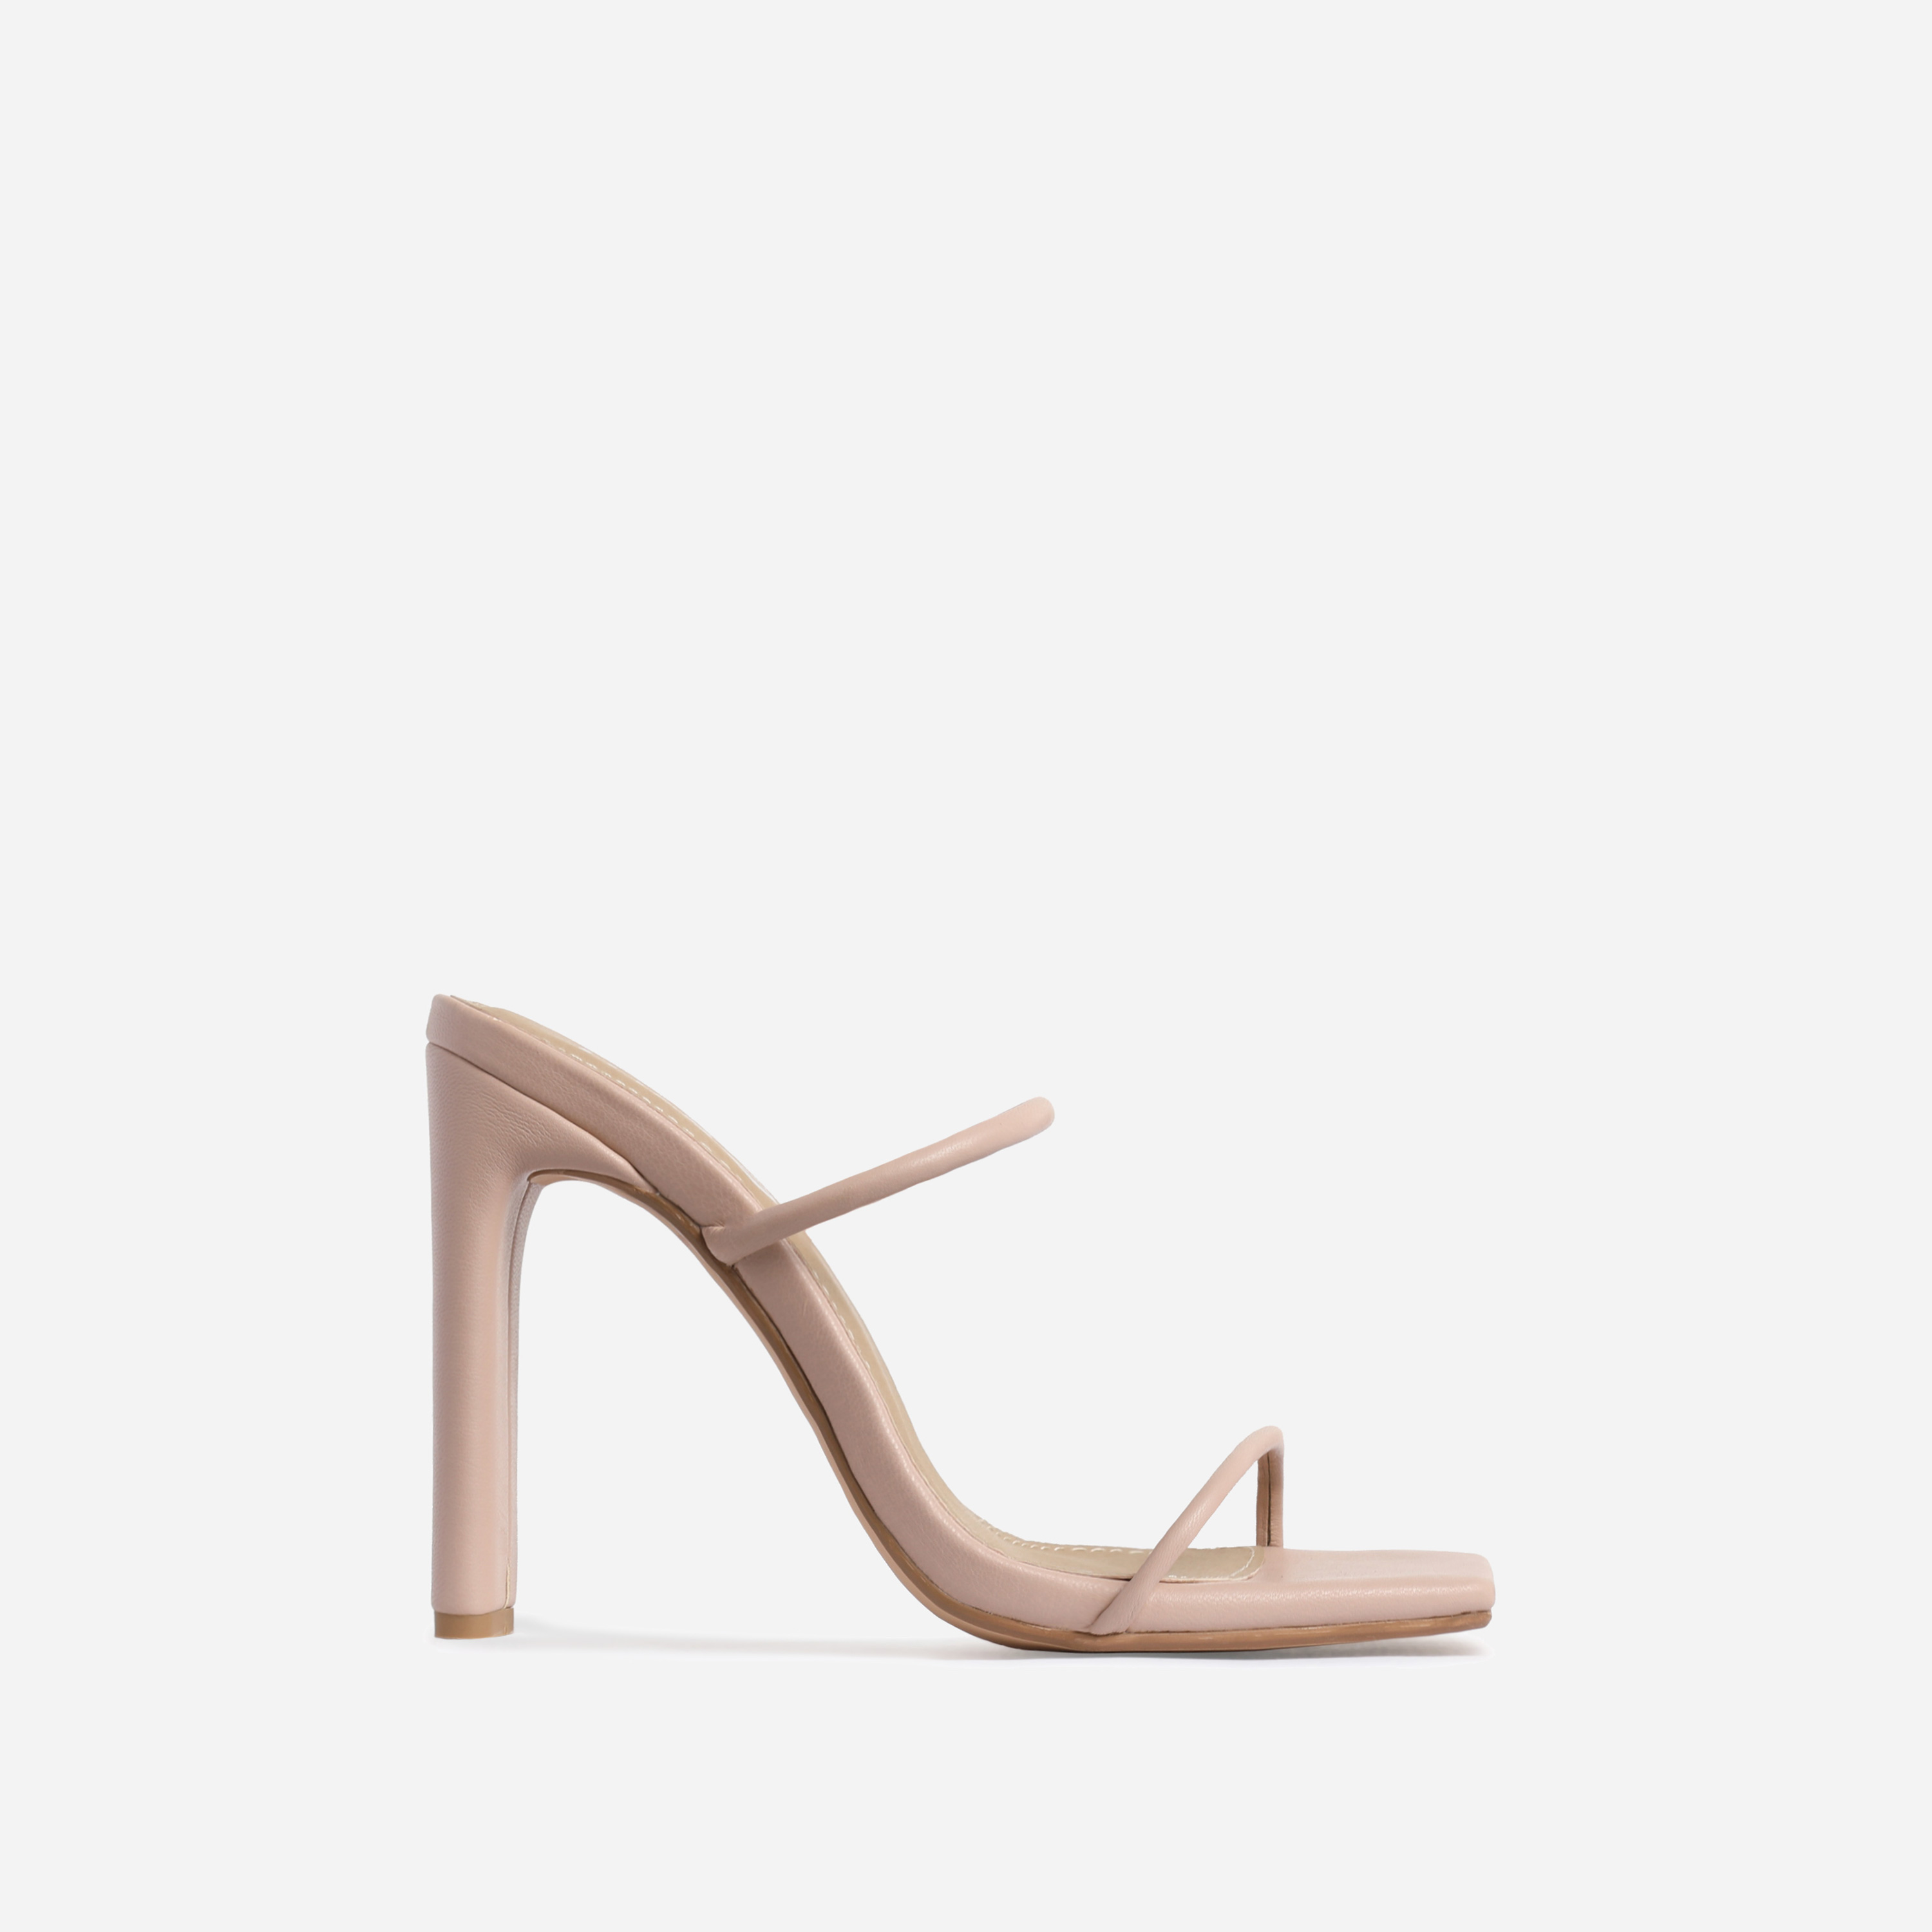 Highland Barely There Square Toe Heel Mule In Nude Faux Leather